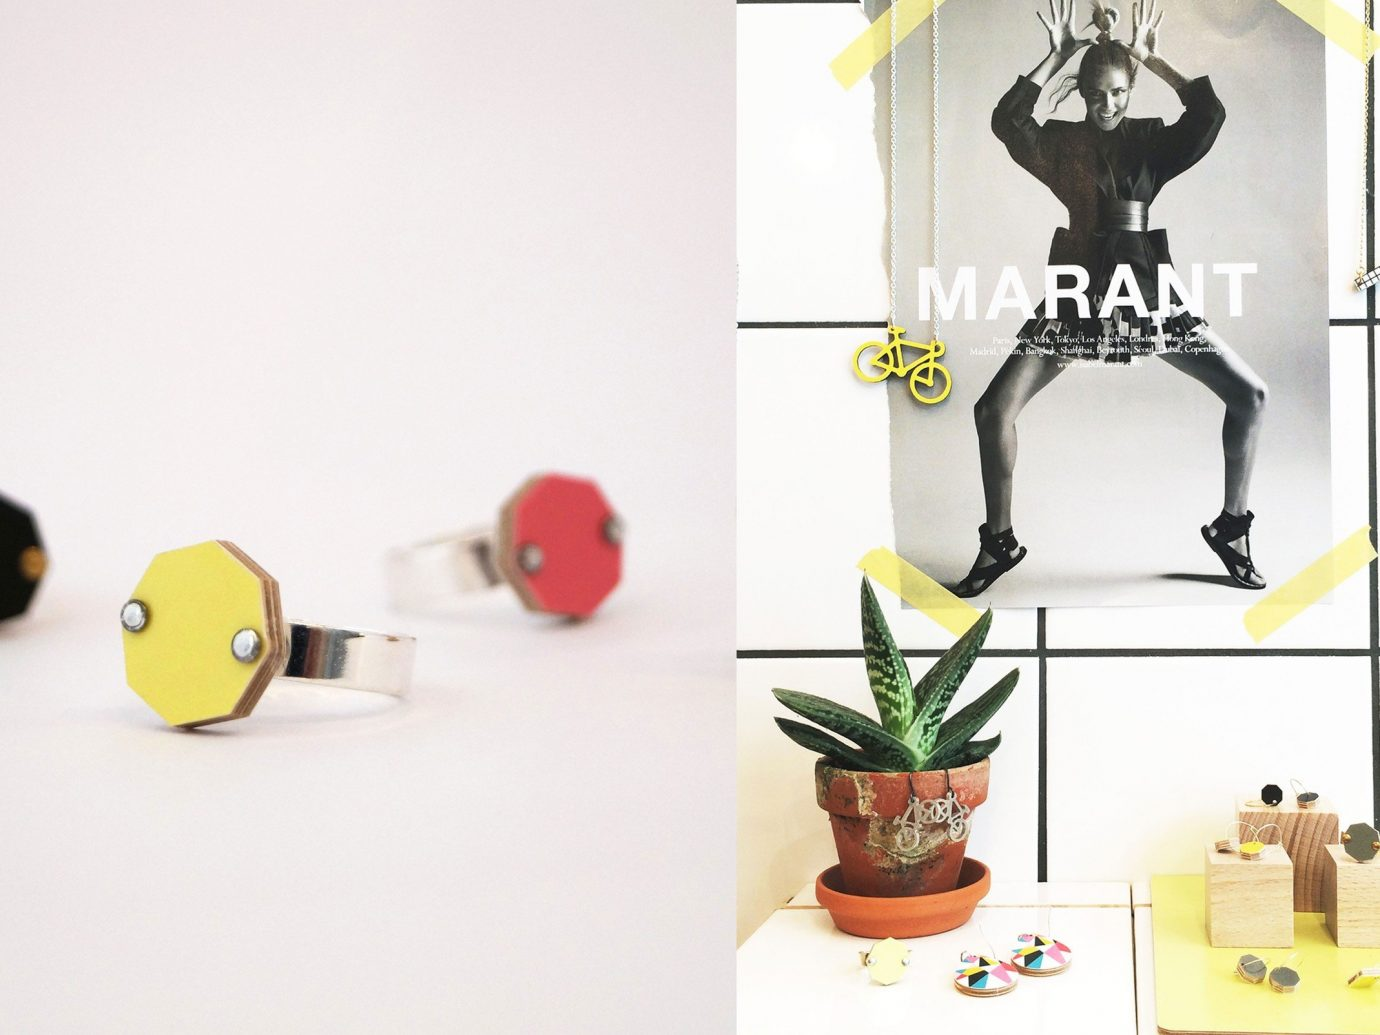 Style + Design wall indoor yellow font toy art brand Design illustration lamp furniture